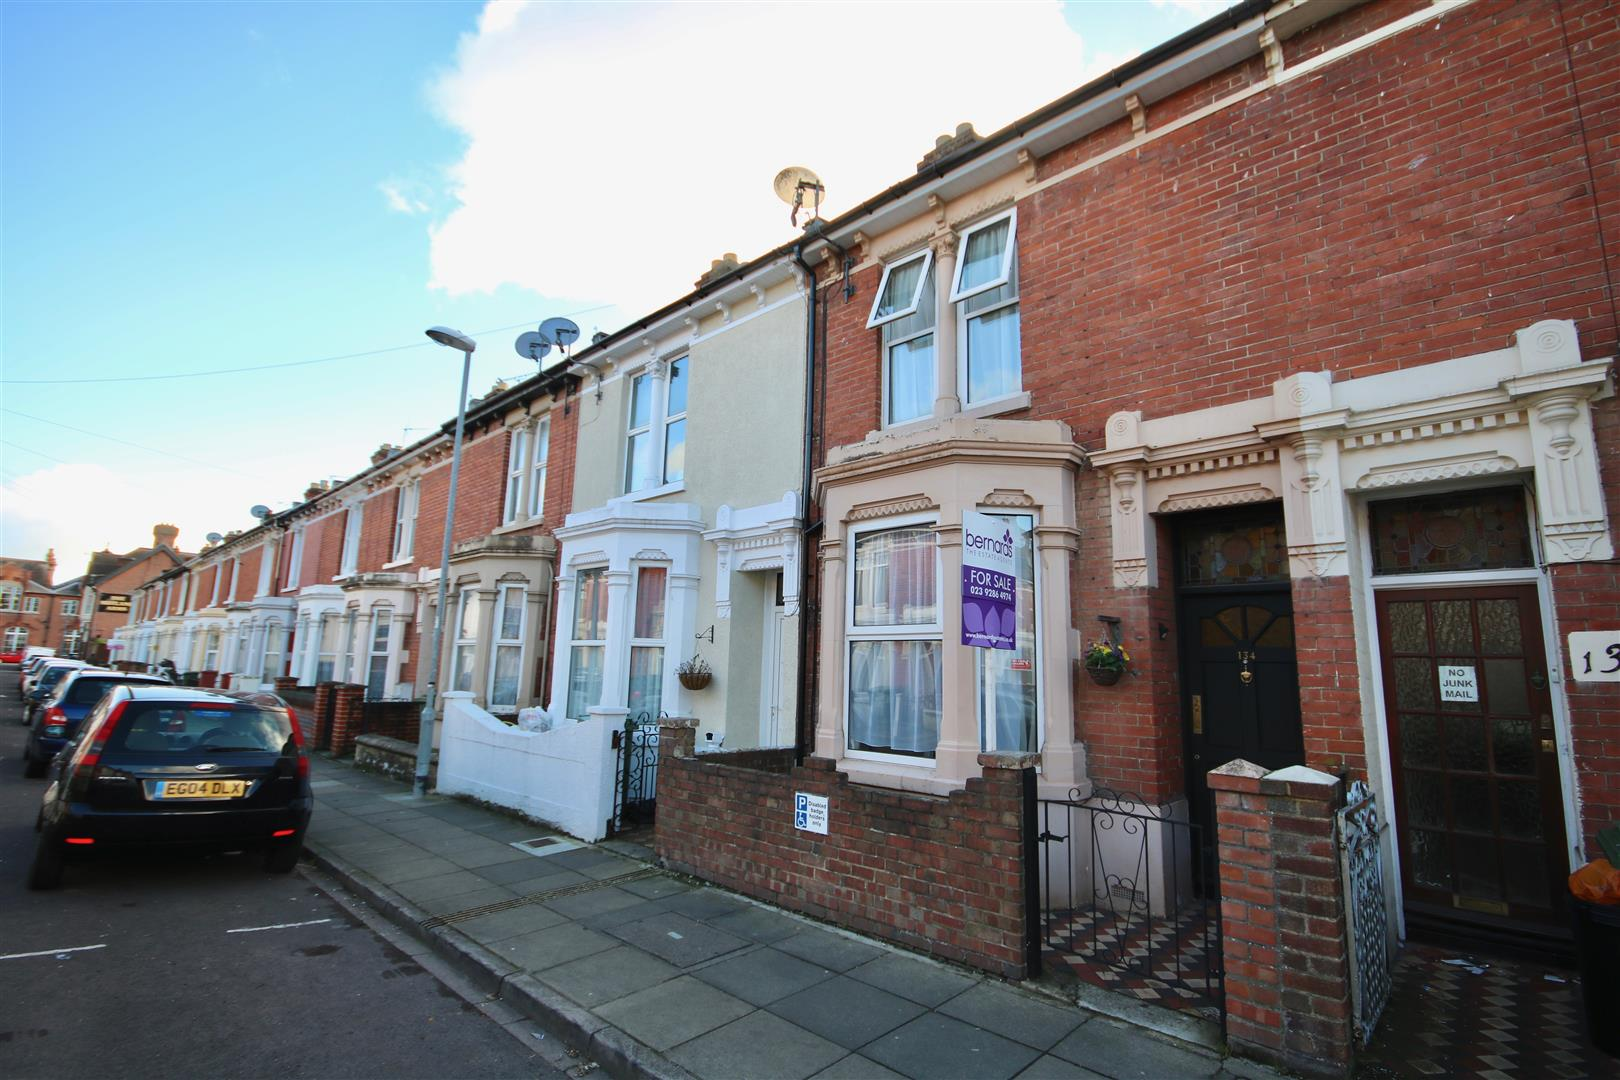 3 Bedrooms Terraced House for sale in Manners Road, SOUTHSEA, Portsmouth, Hampshire